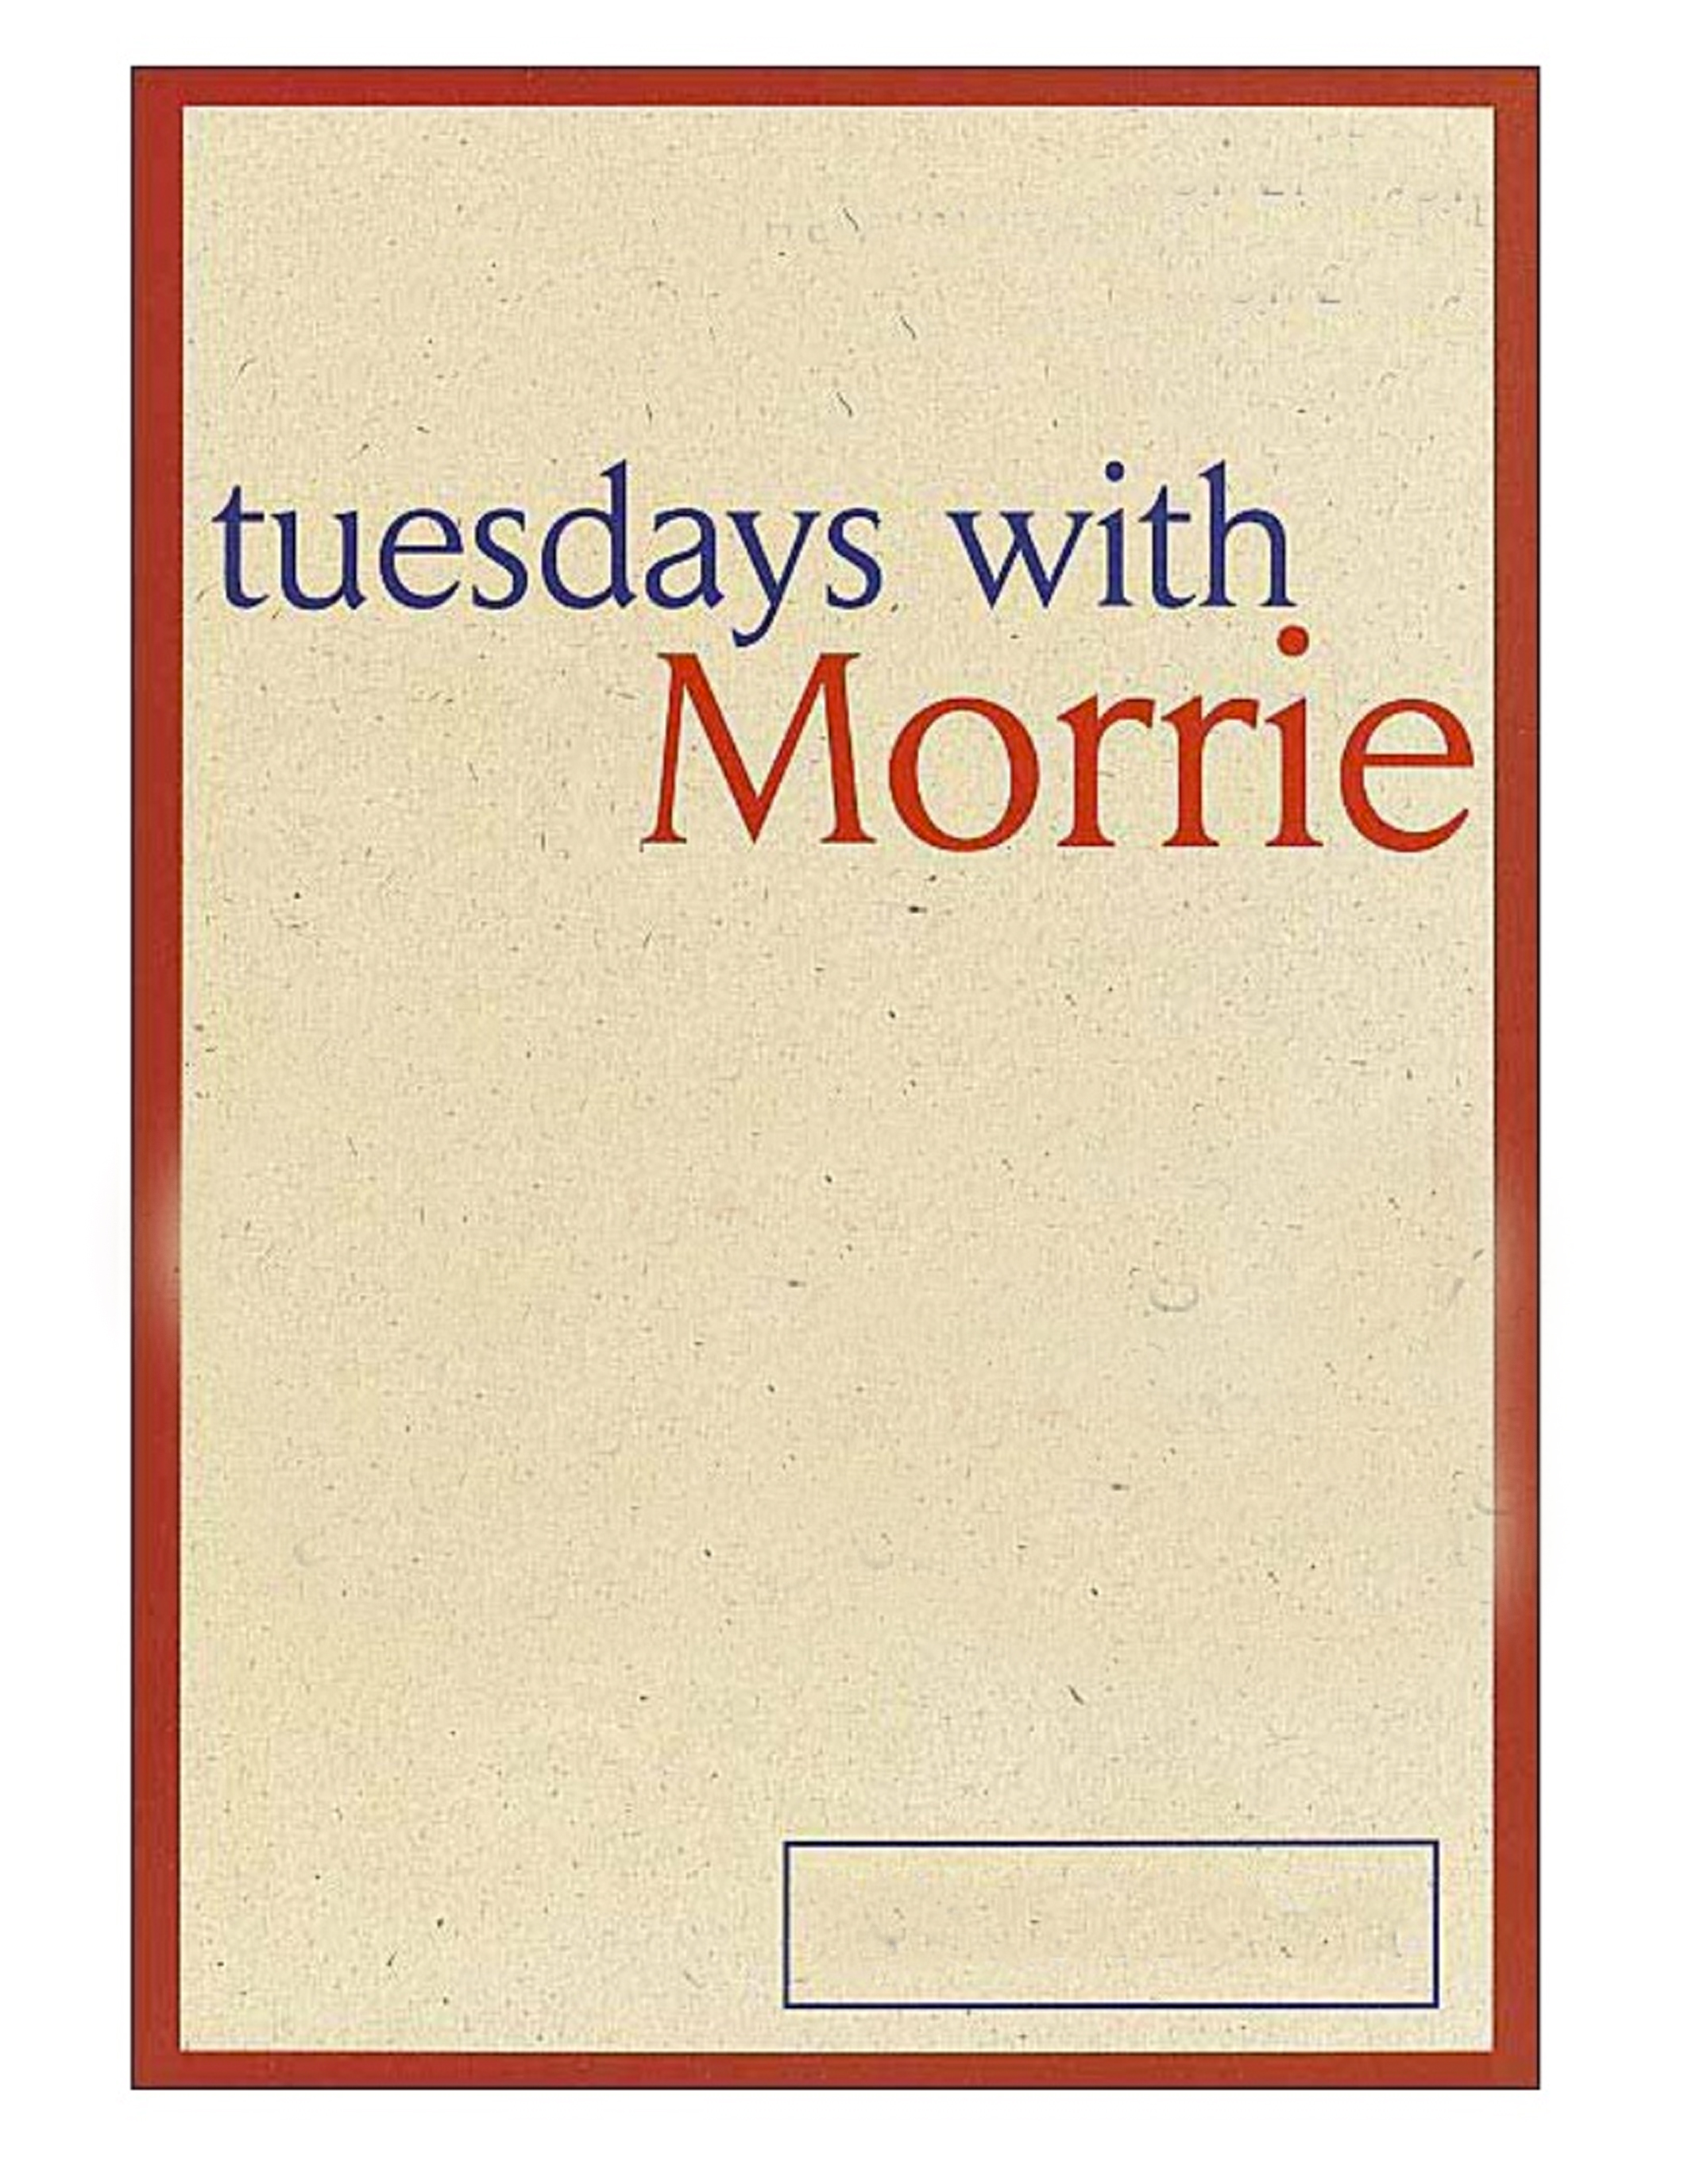 tuesdays with morrie materialism Tuesdays with morrie is a magical chronicle of their time together, through which mitch shares morrie's lasting gift with the world now the best-selling memoir of all time, tuesdays with morrie began as a modest labor of love to help pay some of schwartz's medical bills.